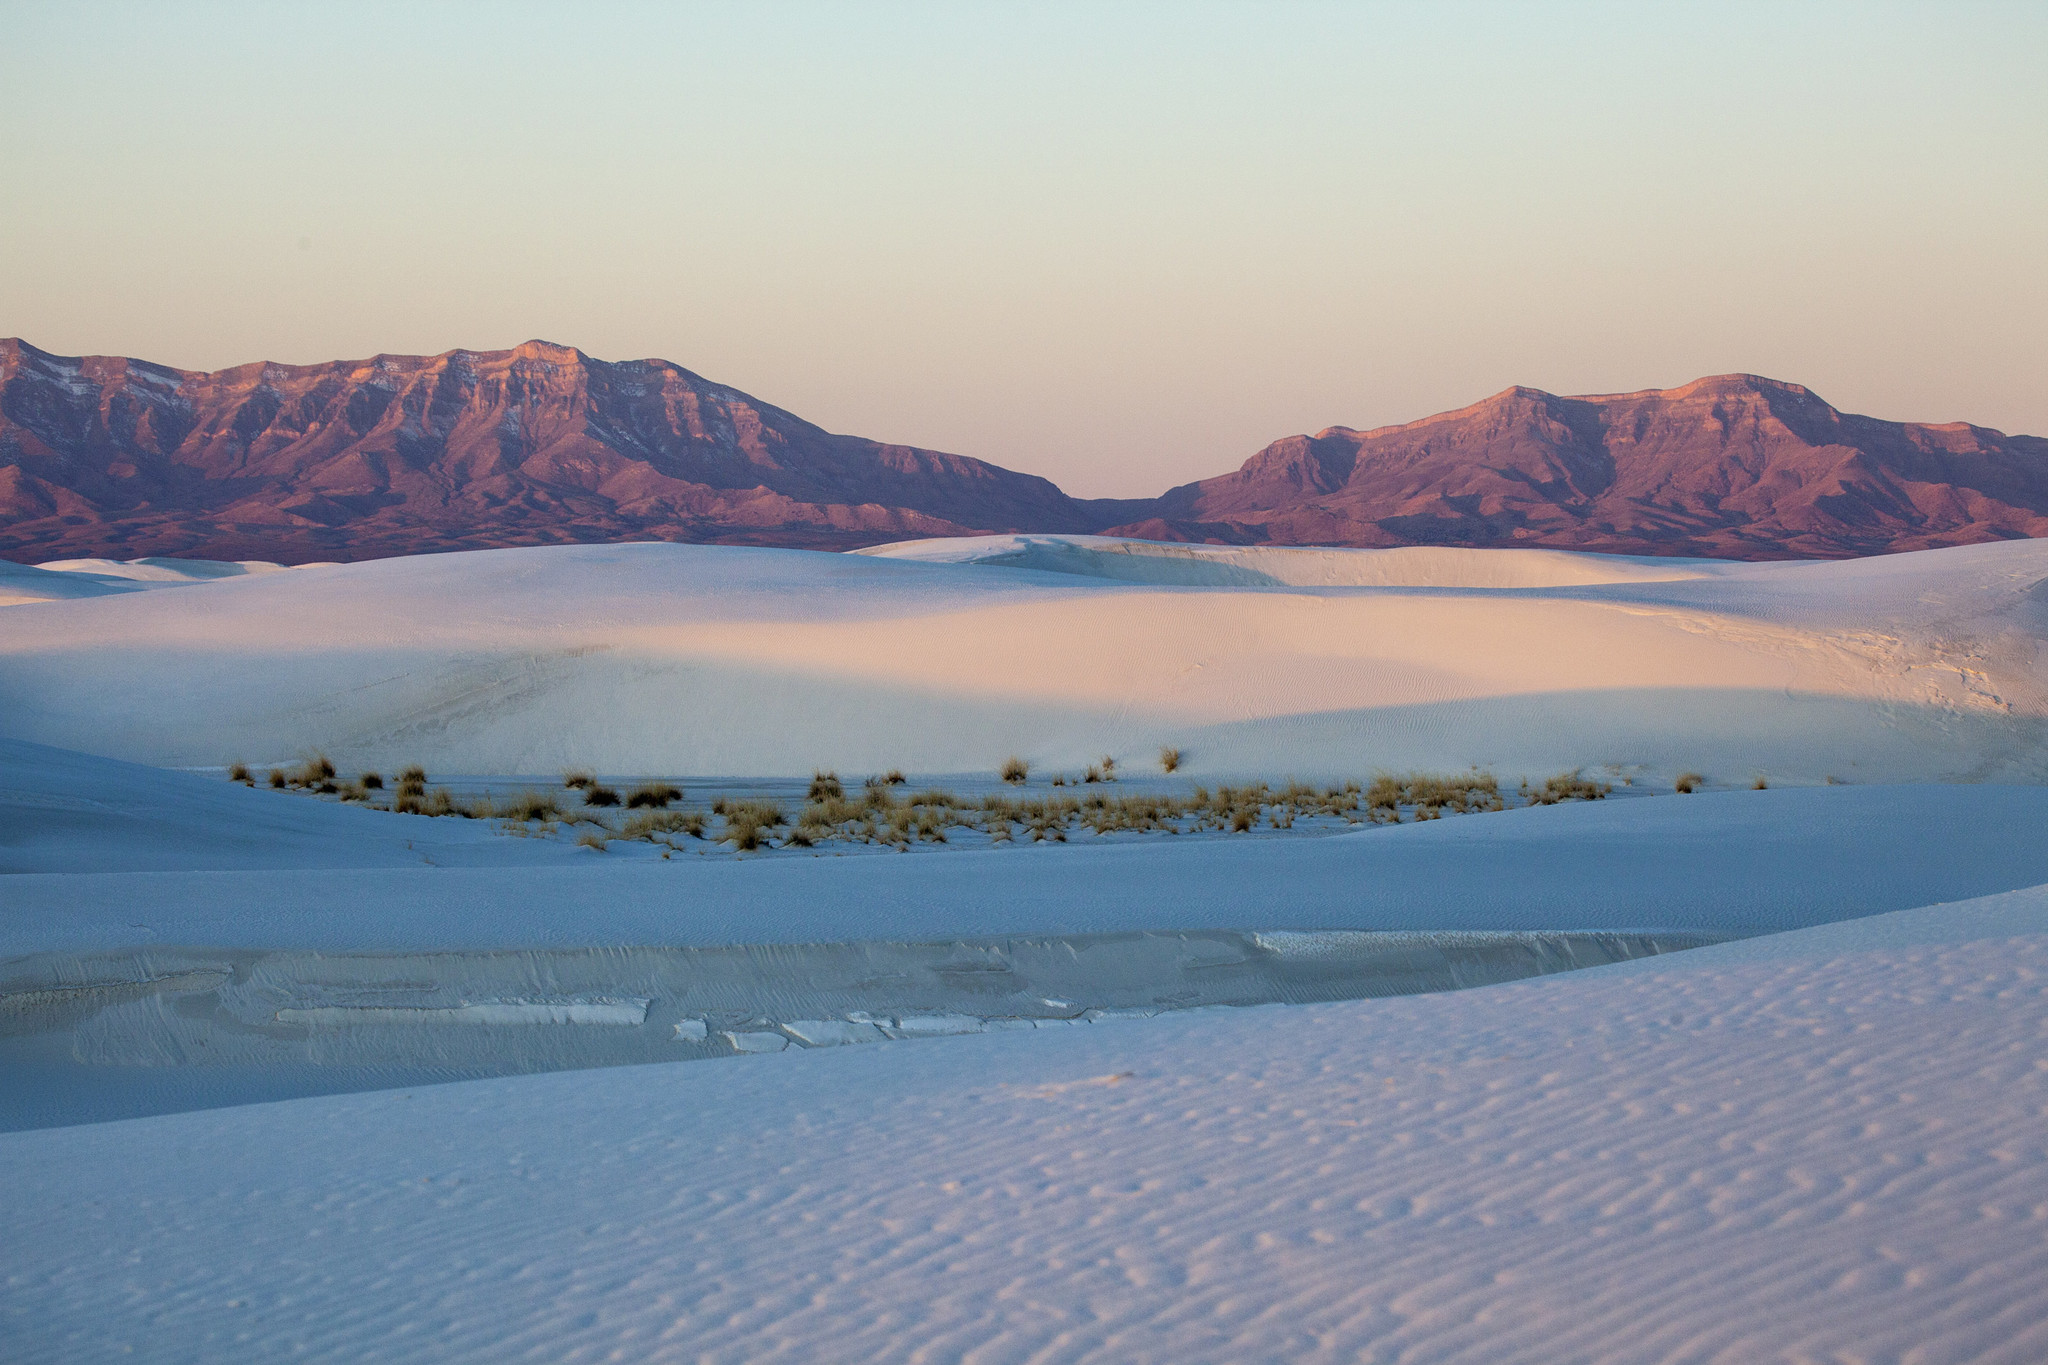 Dunes of White Sands National Monument